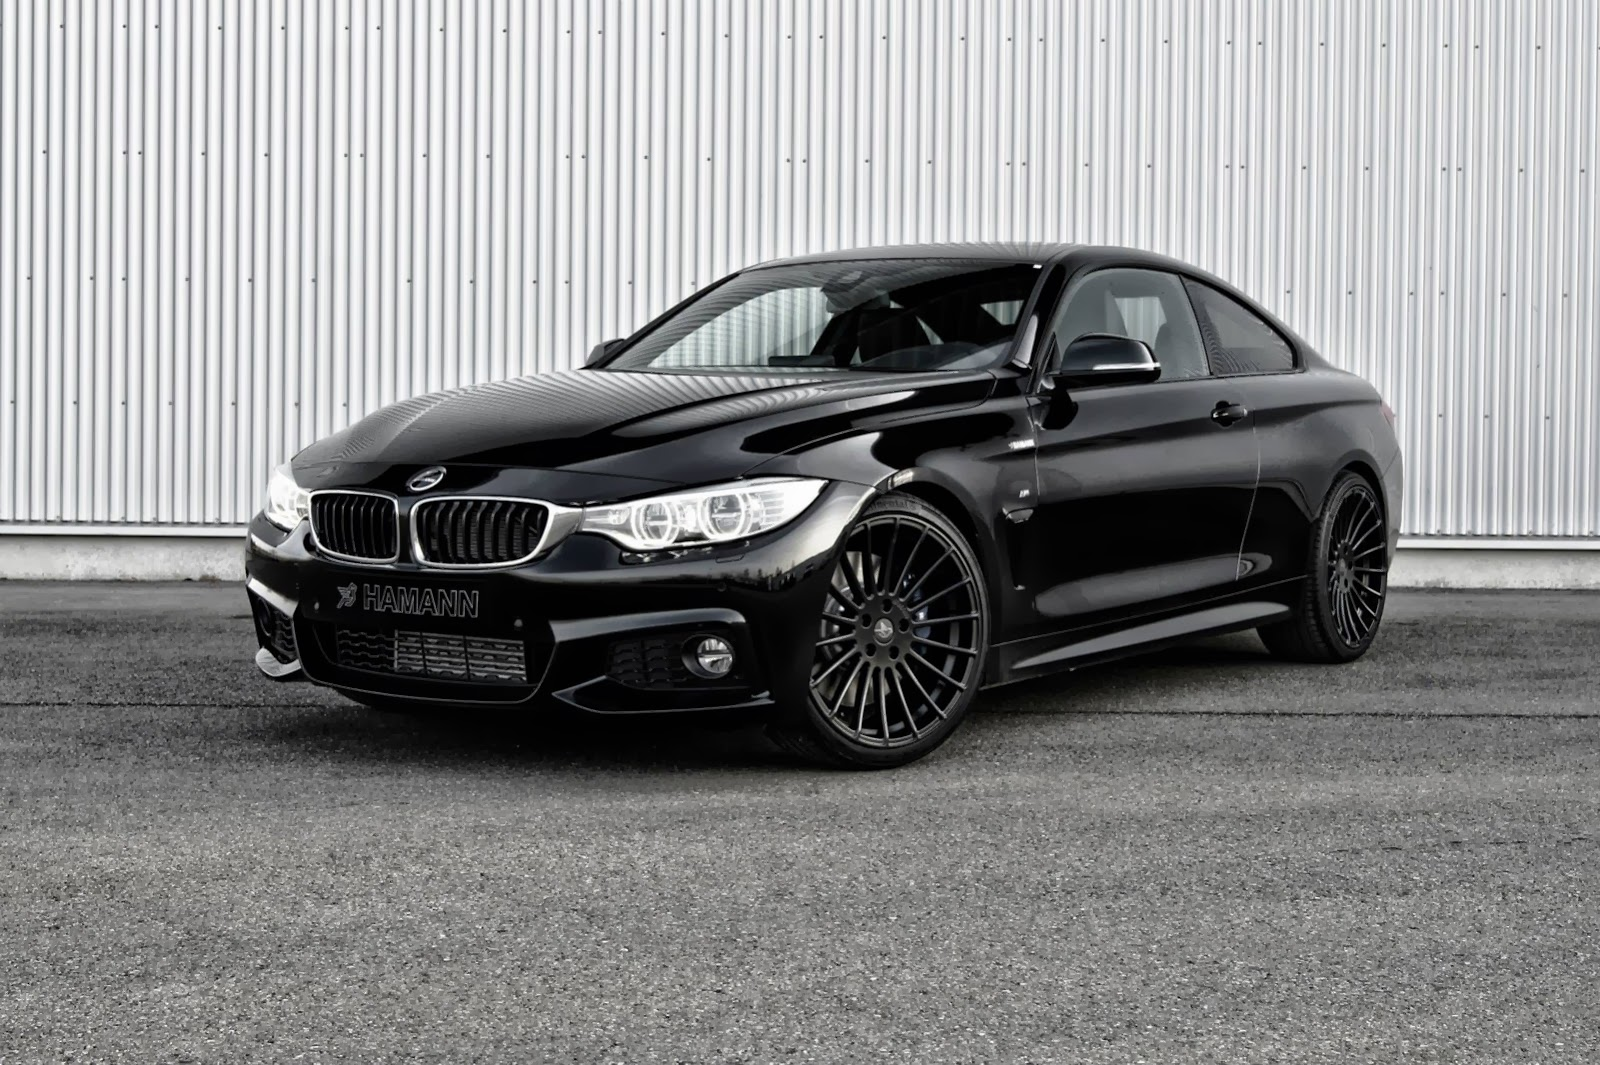 hamann wheels for the bmw 4 series revealed. Black Bedroom Furniture Sets. Home Design Ideas